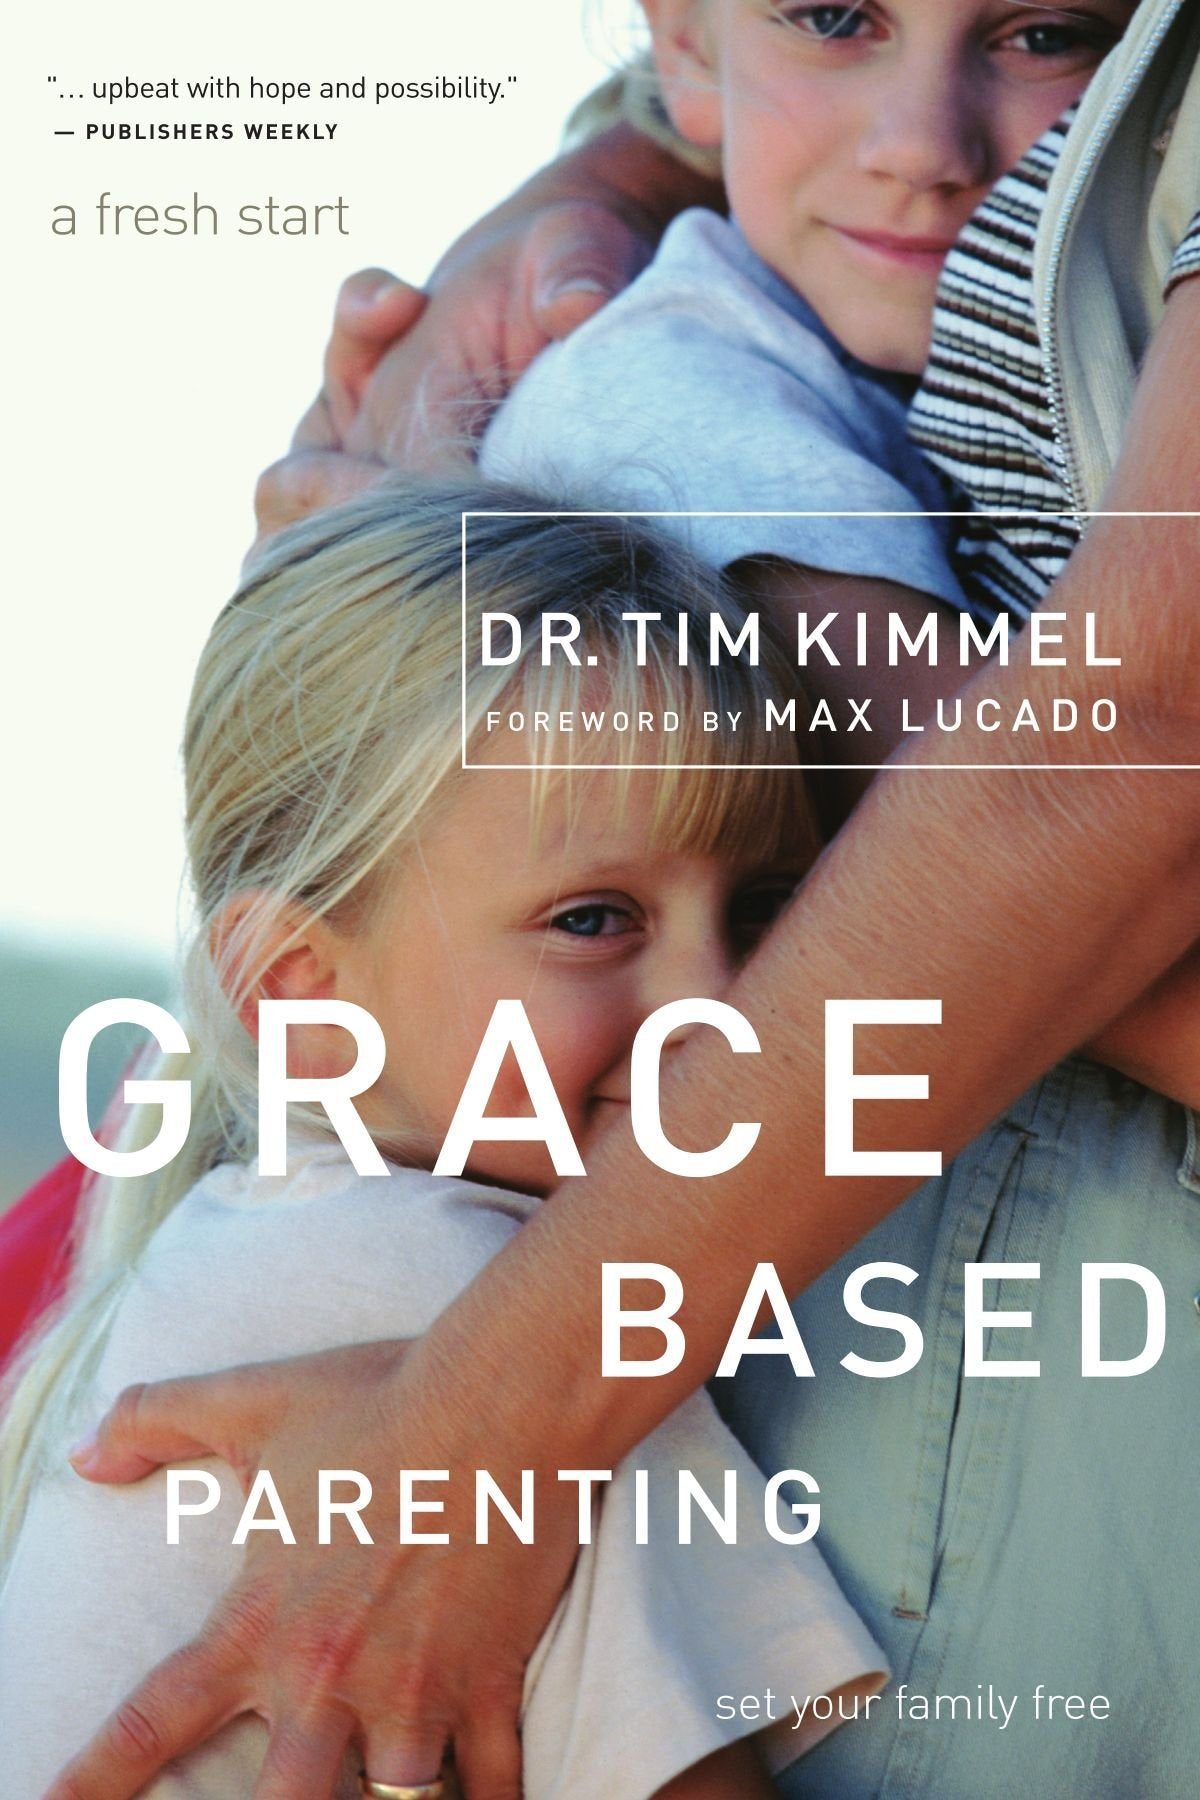 ROCKONLINE | New Creation Church | NCC | Joseph Prince | ROCK Bookshop | ROCK Bookstore | Star Vista | Grace Based Parenting | Tim Kimmel | Parenting | Grace Based Teaching | Free delivery for Singapore Orders above $50.